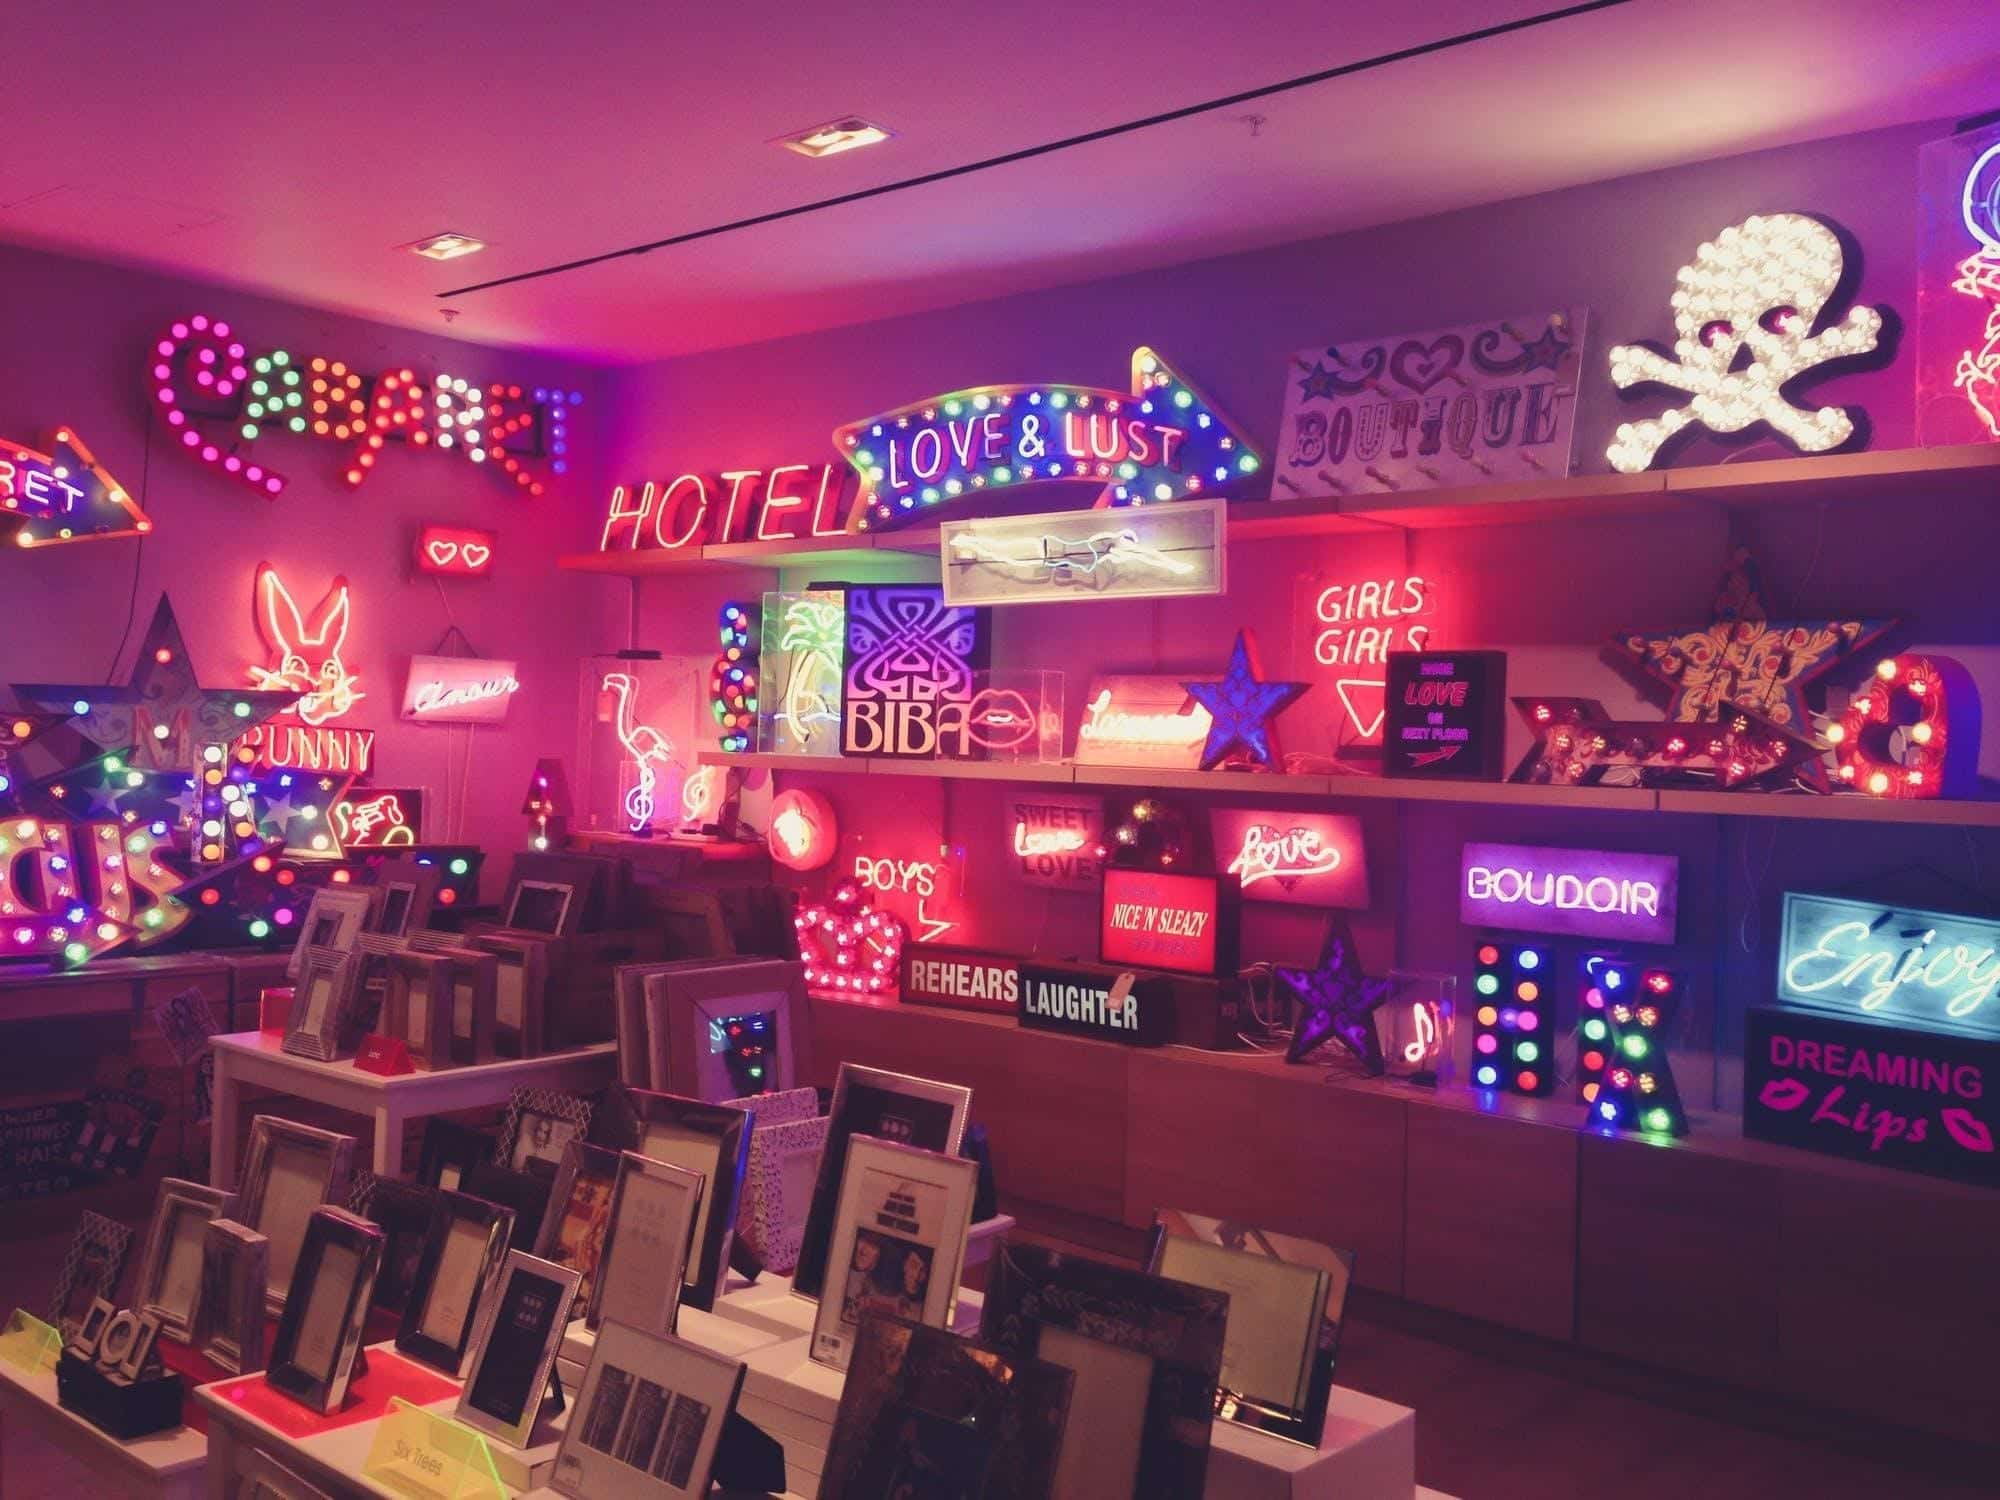 Store shelves of neon signs displaying various sayings; image by Kokil Sharma, via Pexels.com.